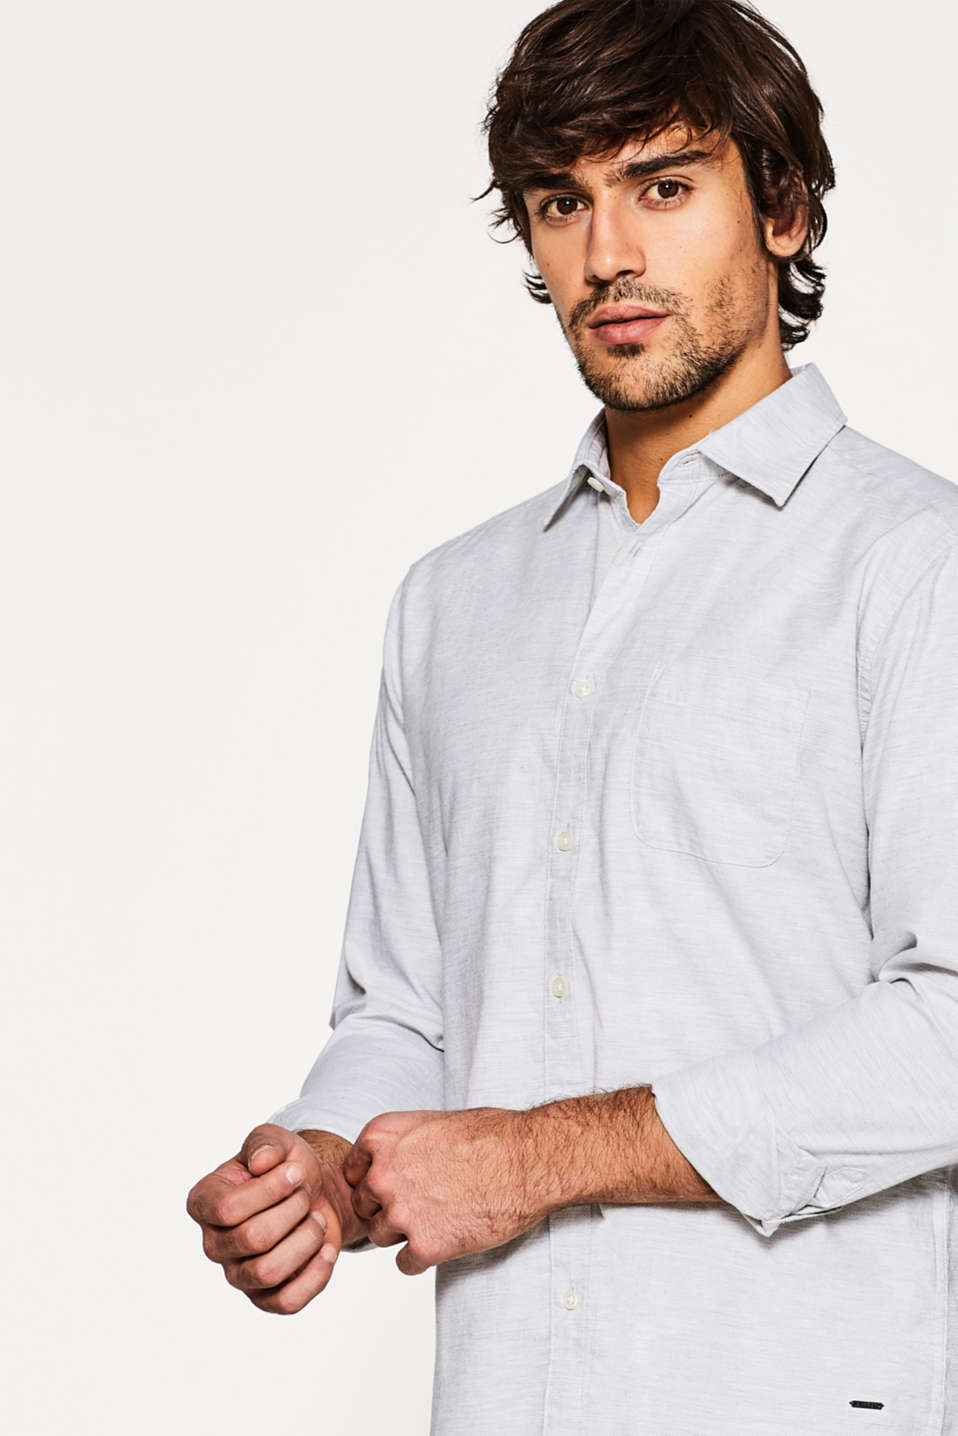 Esprit - Shirt with a slub texture, in cotton